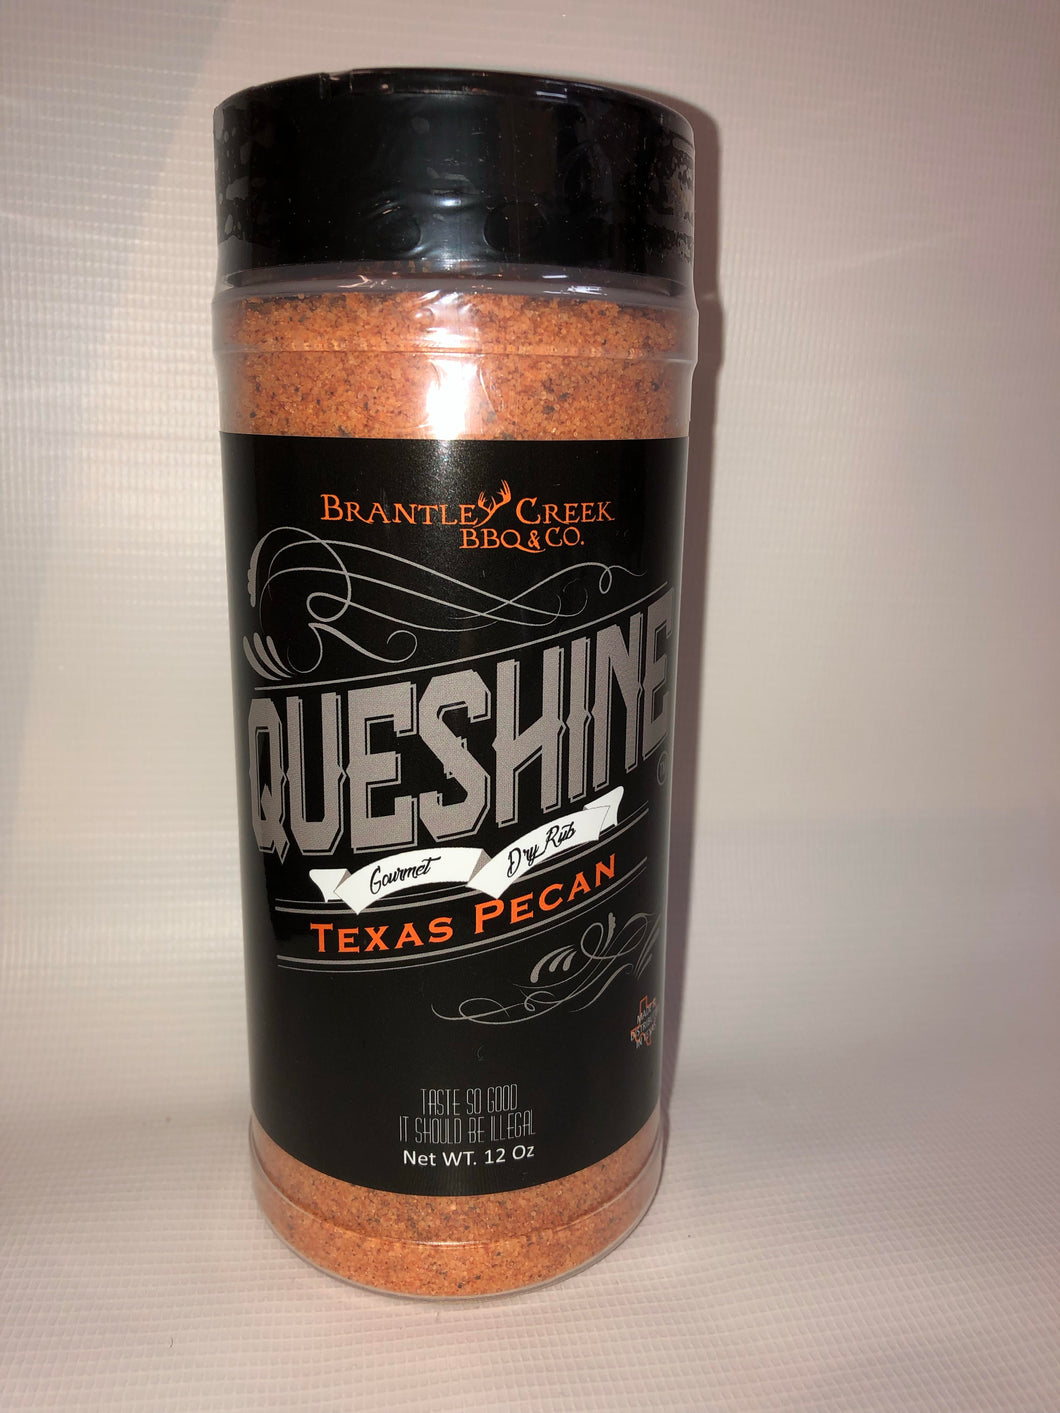 Queshine Texas Pecan